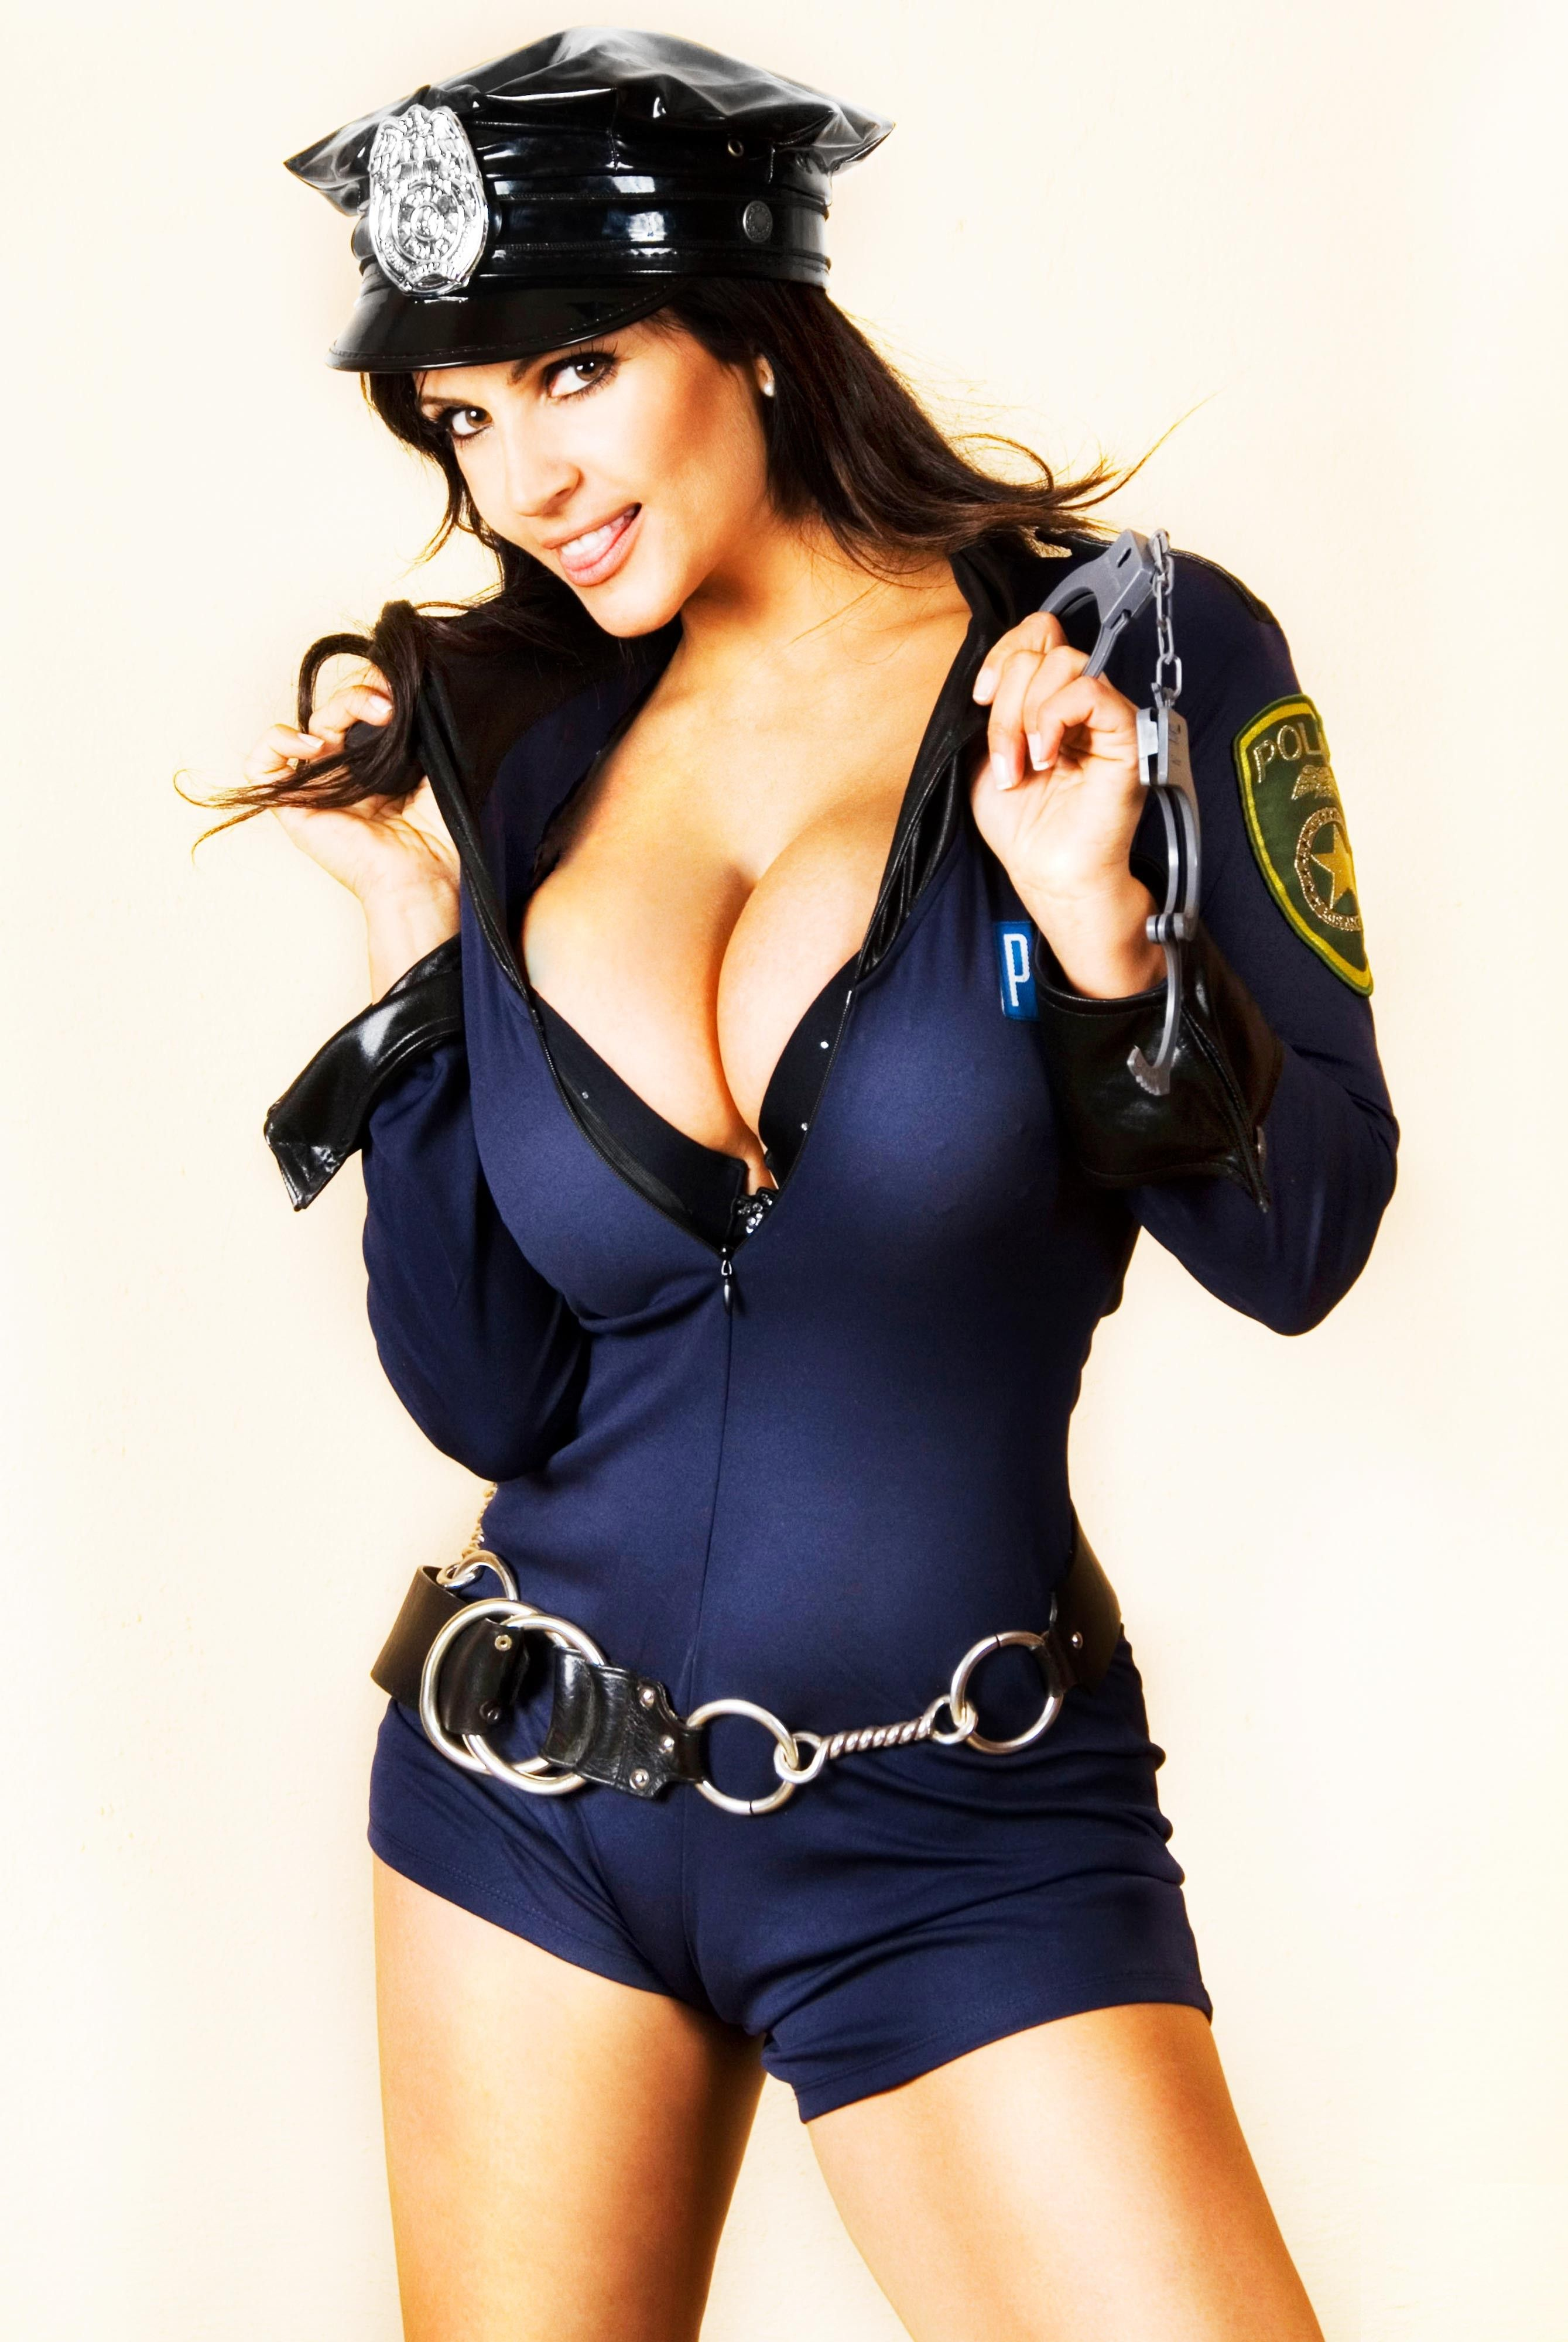 Denise Milani  Holiday Wearcostumes  Milani, Sexy, Hot Cops-8119